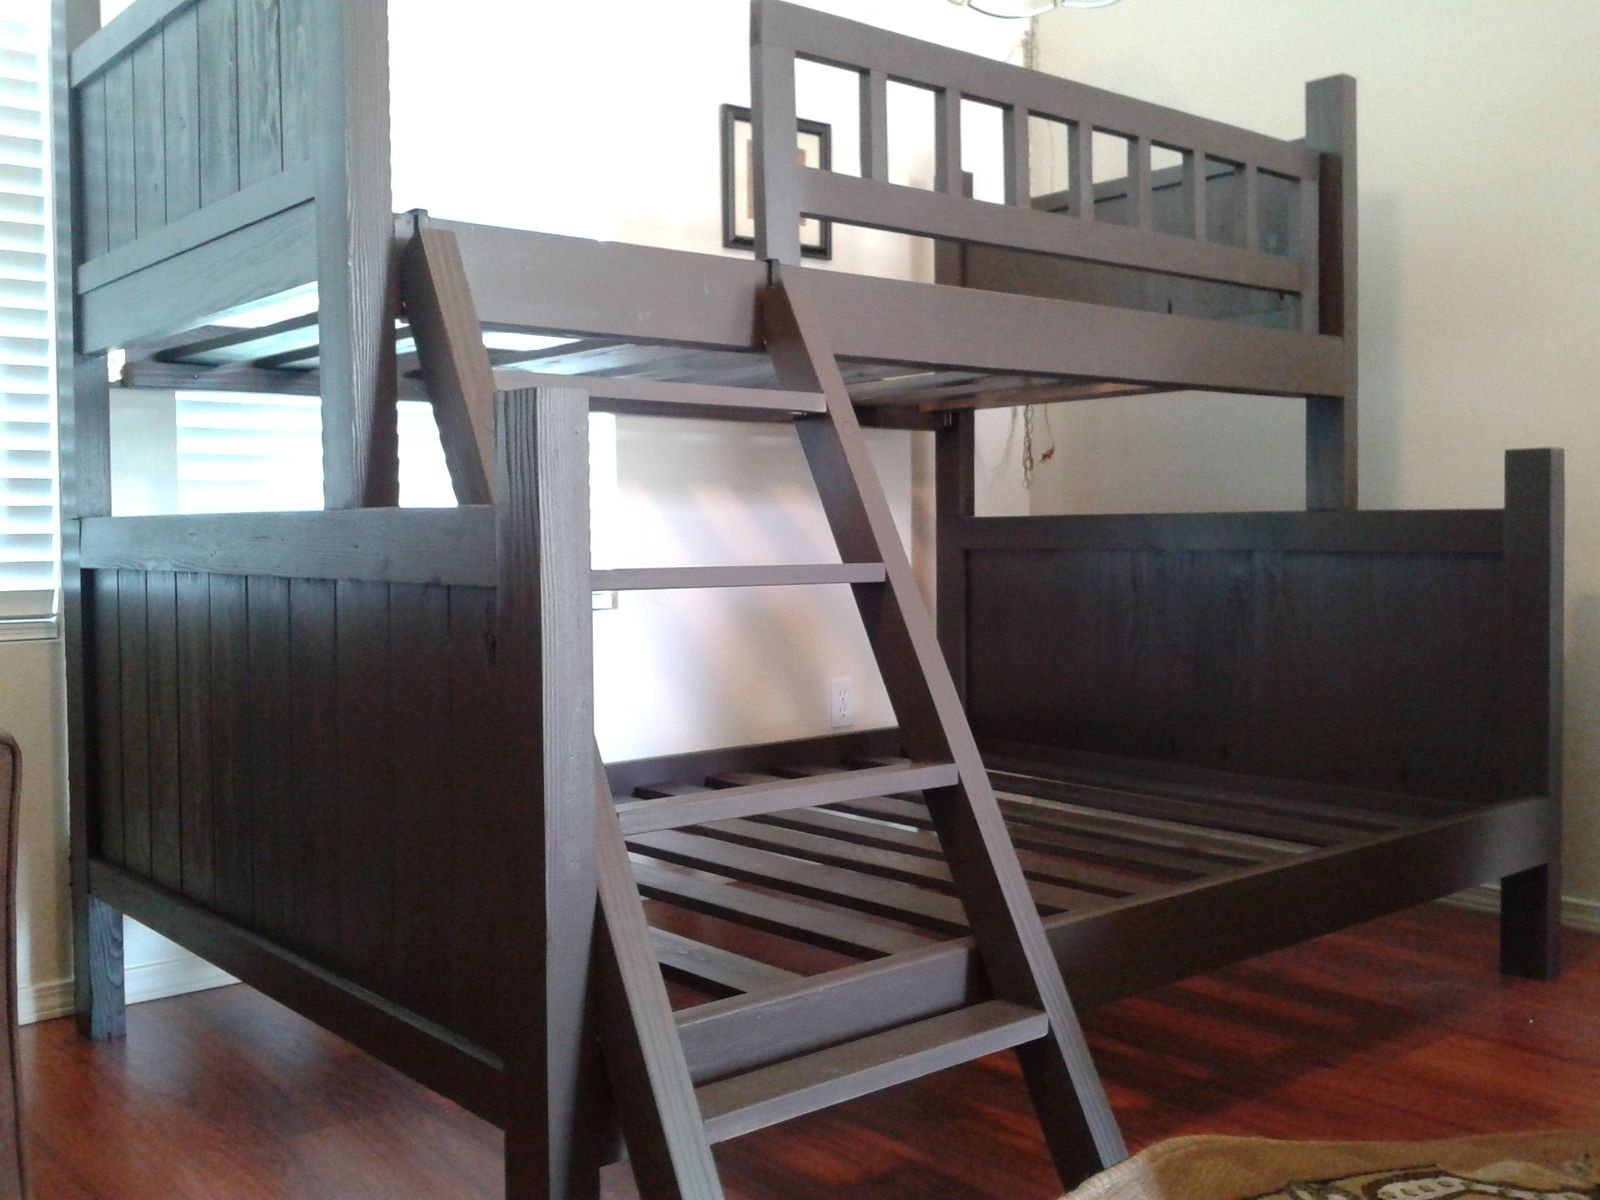 Custom Bunk Beds custom bunk bed, pottery barn styletreasure valley woodcrafts